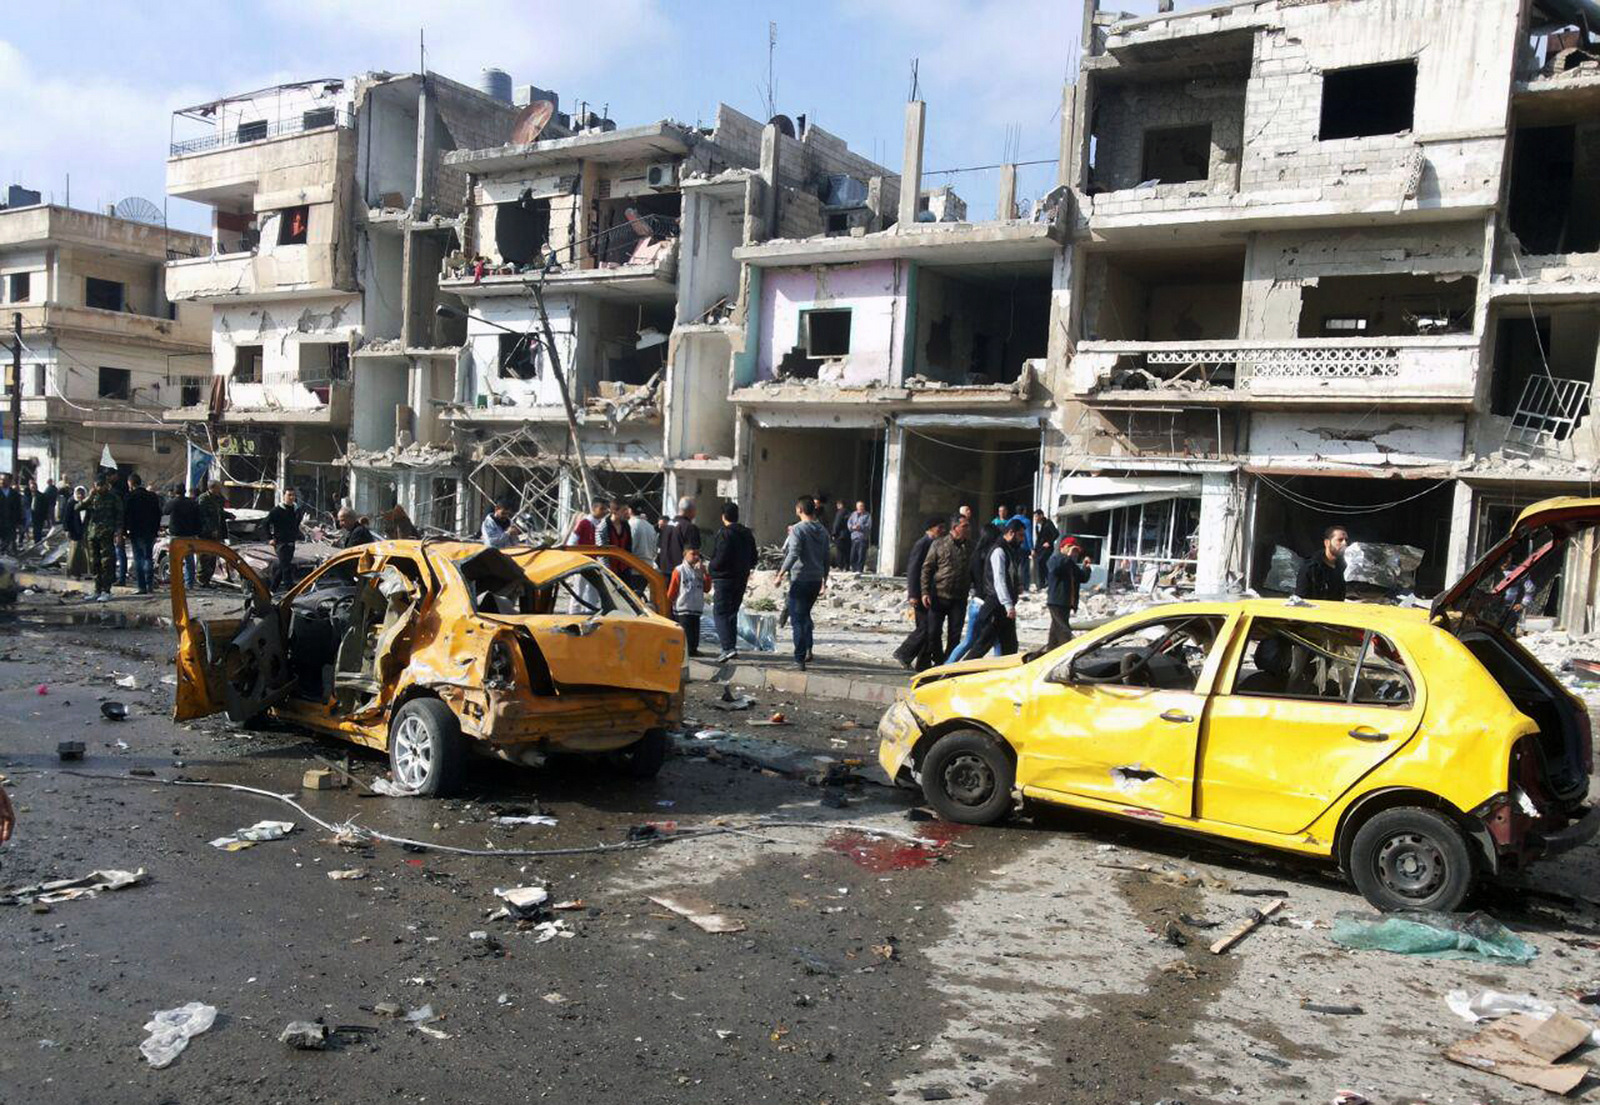 Syrian citizens gather at the scene where two blasts exploded in the pro-government neighborhood of Zahraa, in Homs province, Syria, Sunday, Feb. 21, 2016. Two blasts in the central Syrian city of Homs killed more than a dozen people and injured many others in a wave of violence. (SANA via AP)